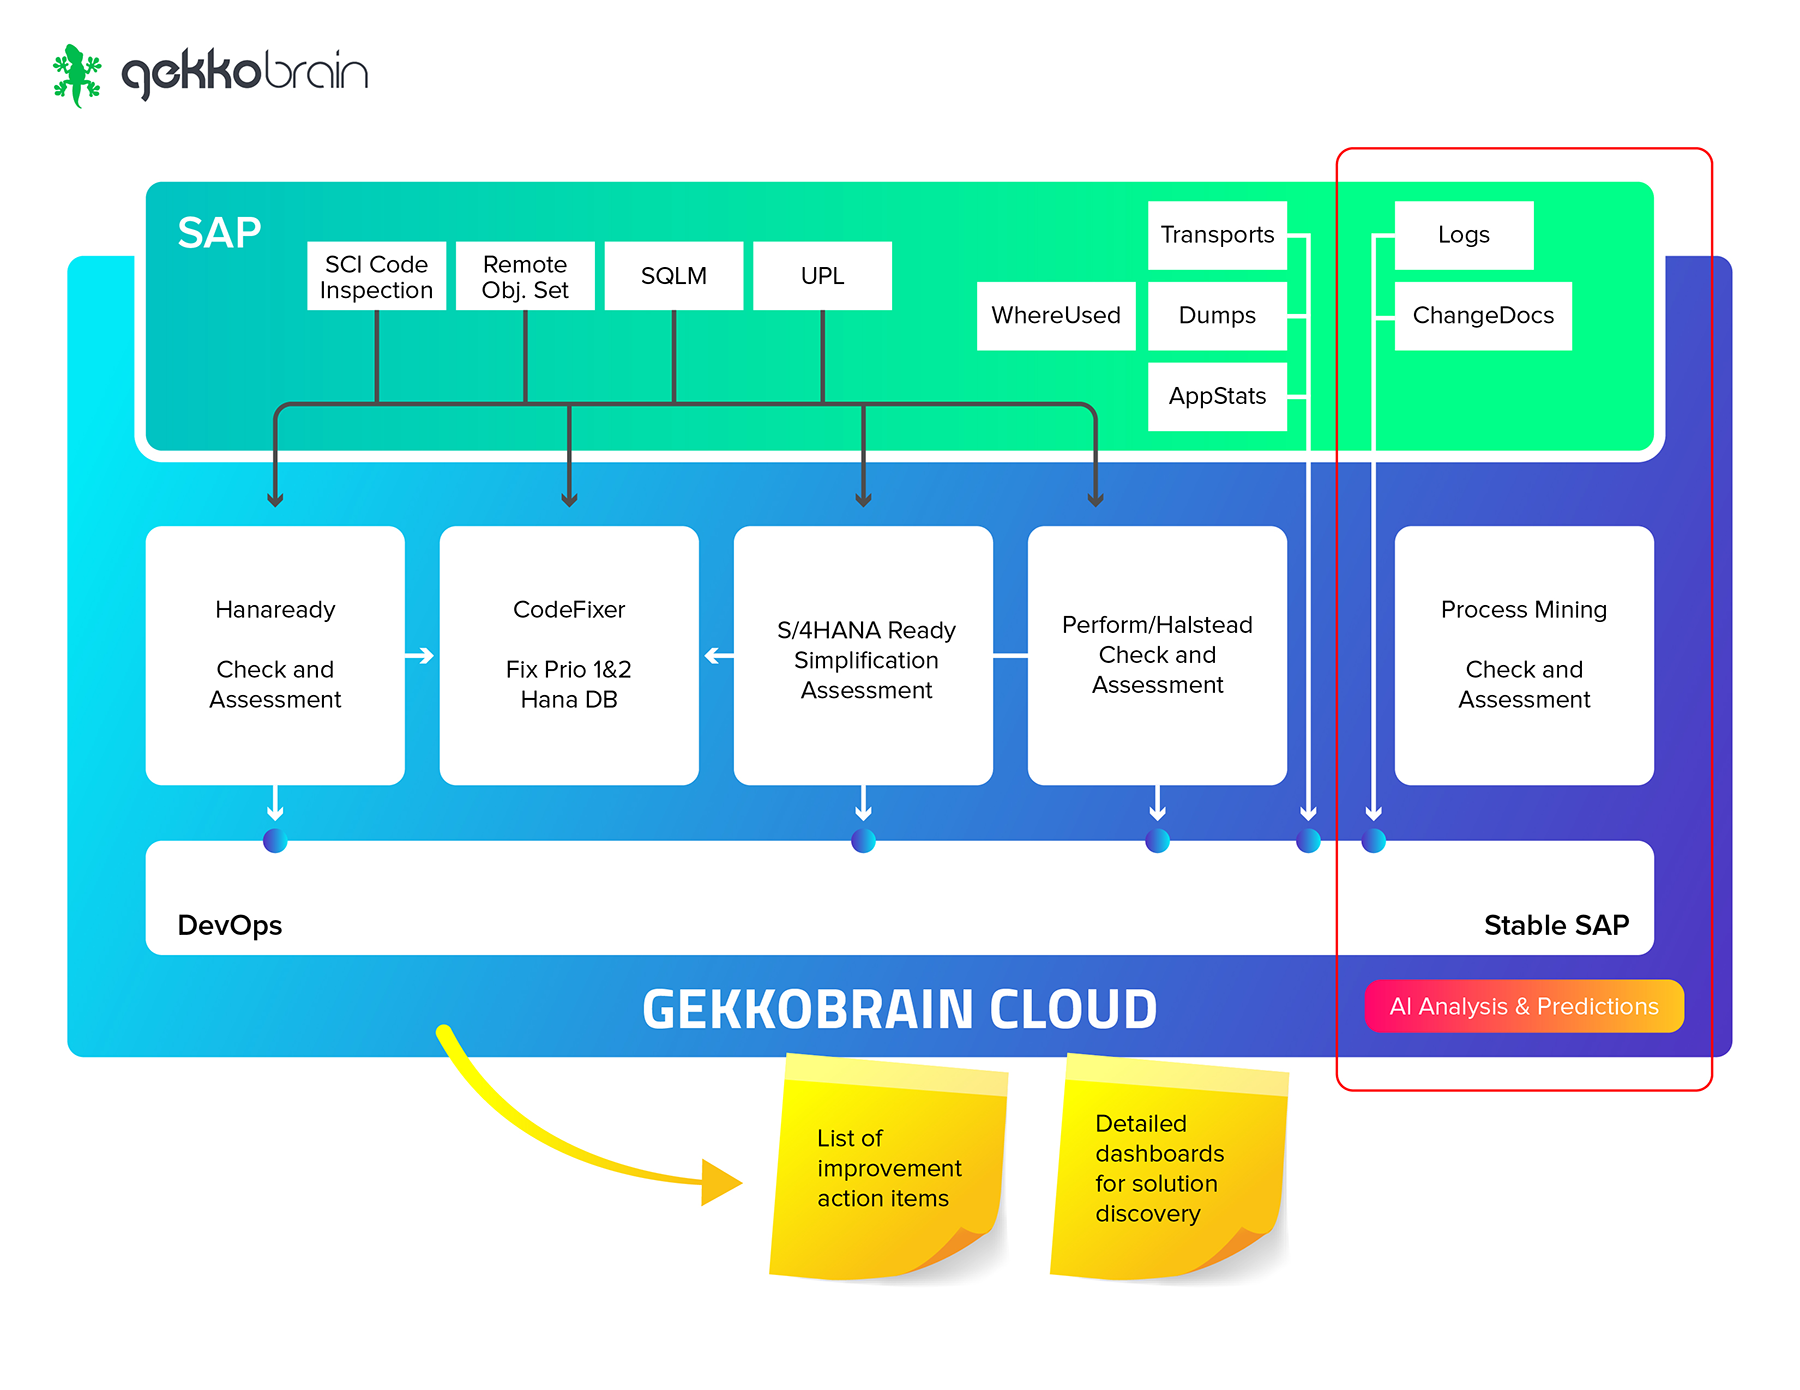 Gekkobrain Cloud Overview - DevOps SAP HANA